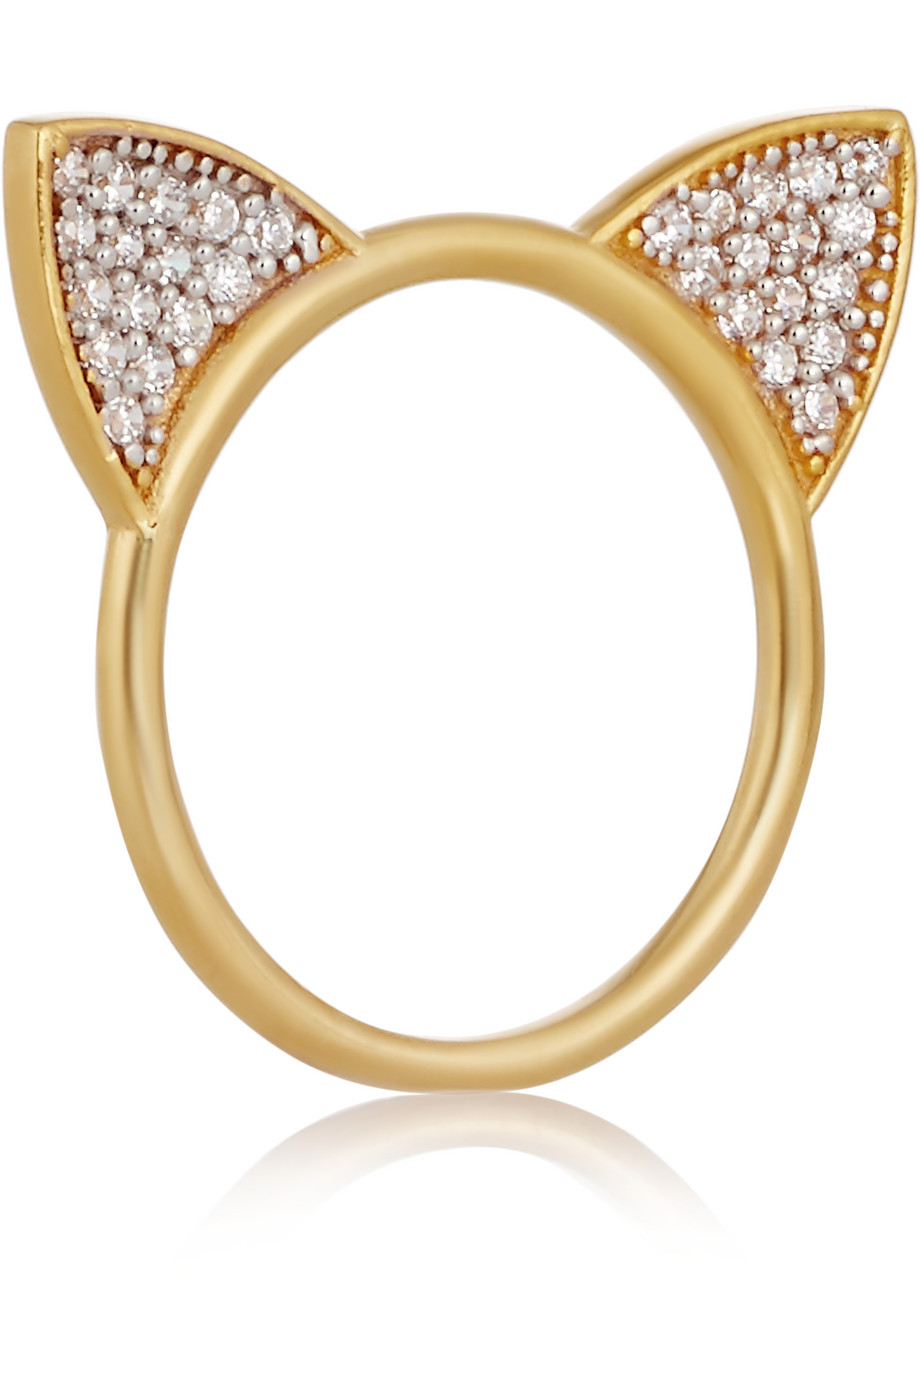 Cat Gold-Plated Topaz Ring, Women's, Size: 8